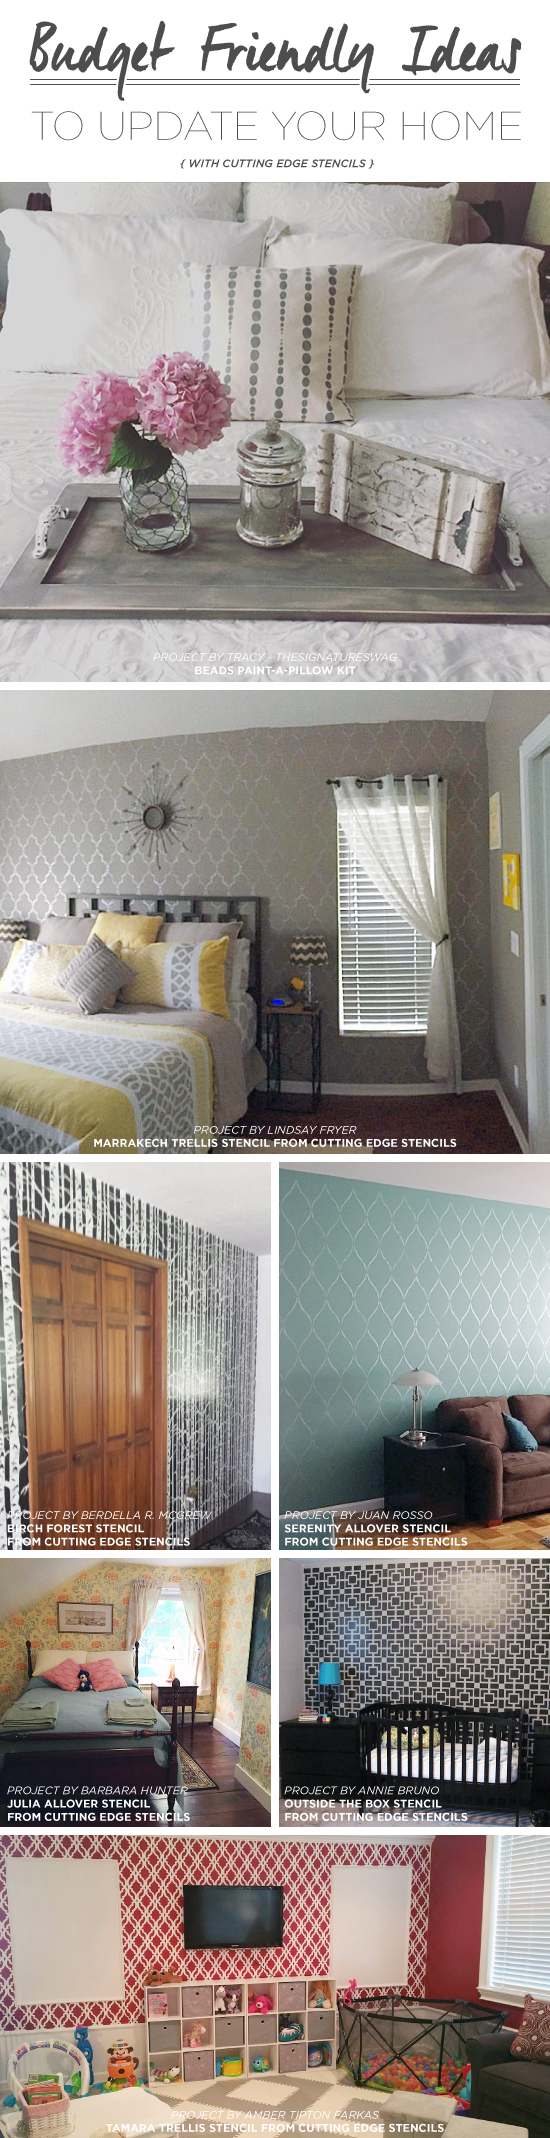 Cutting Edge Stencils shares DIY stenciled room ideas and home decor projects using stencils. http://www.cuttingedgestencils.com/wall-stencils-stencil-designs.html